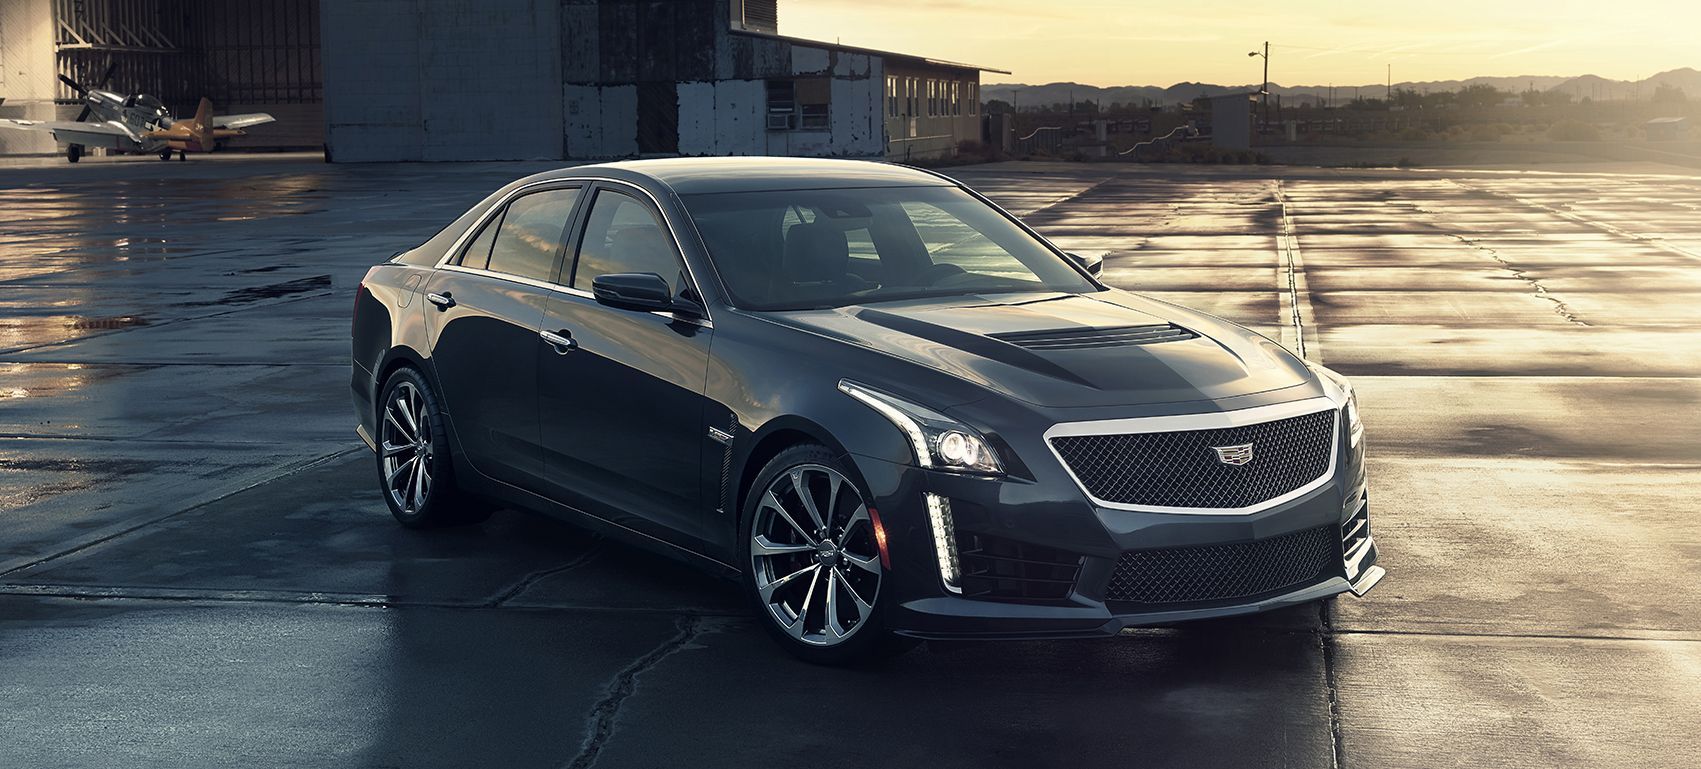 Cars Dear Lord The Want Is Strong And This 2016 Cadillac Cts